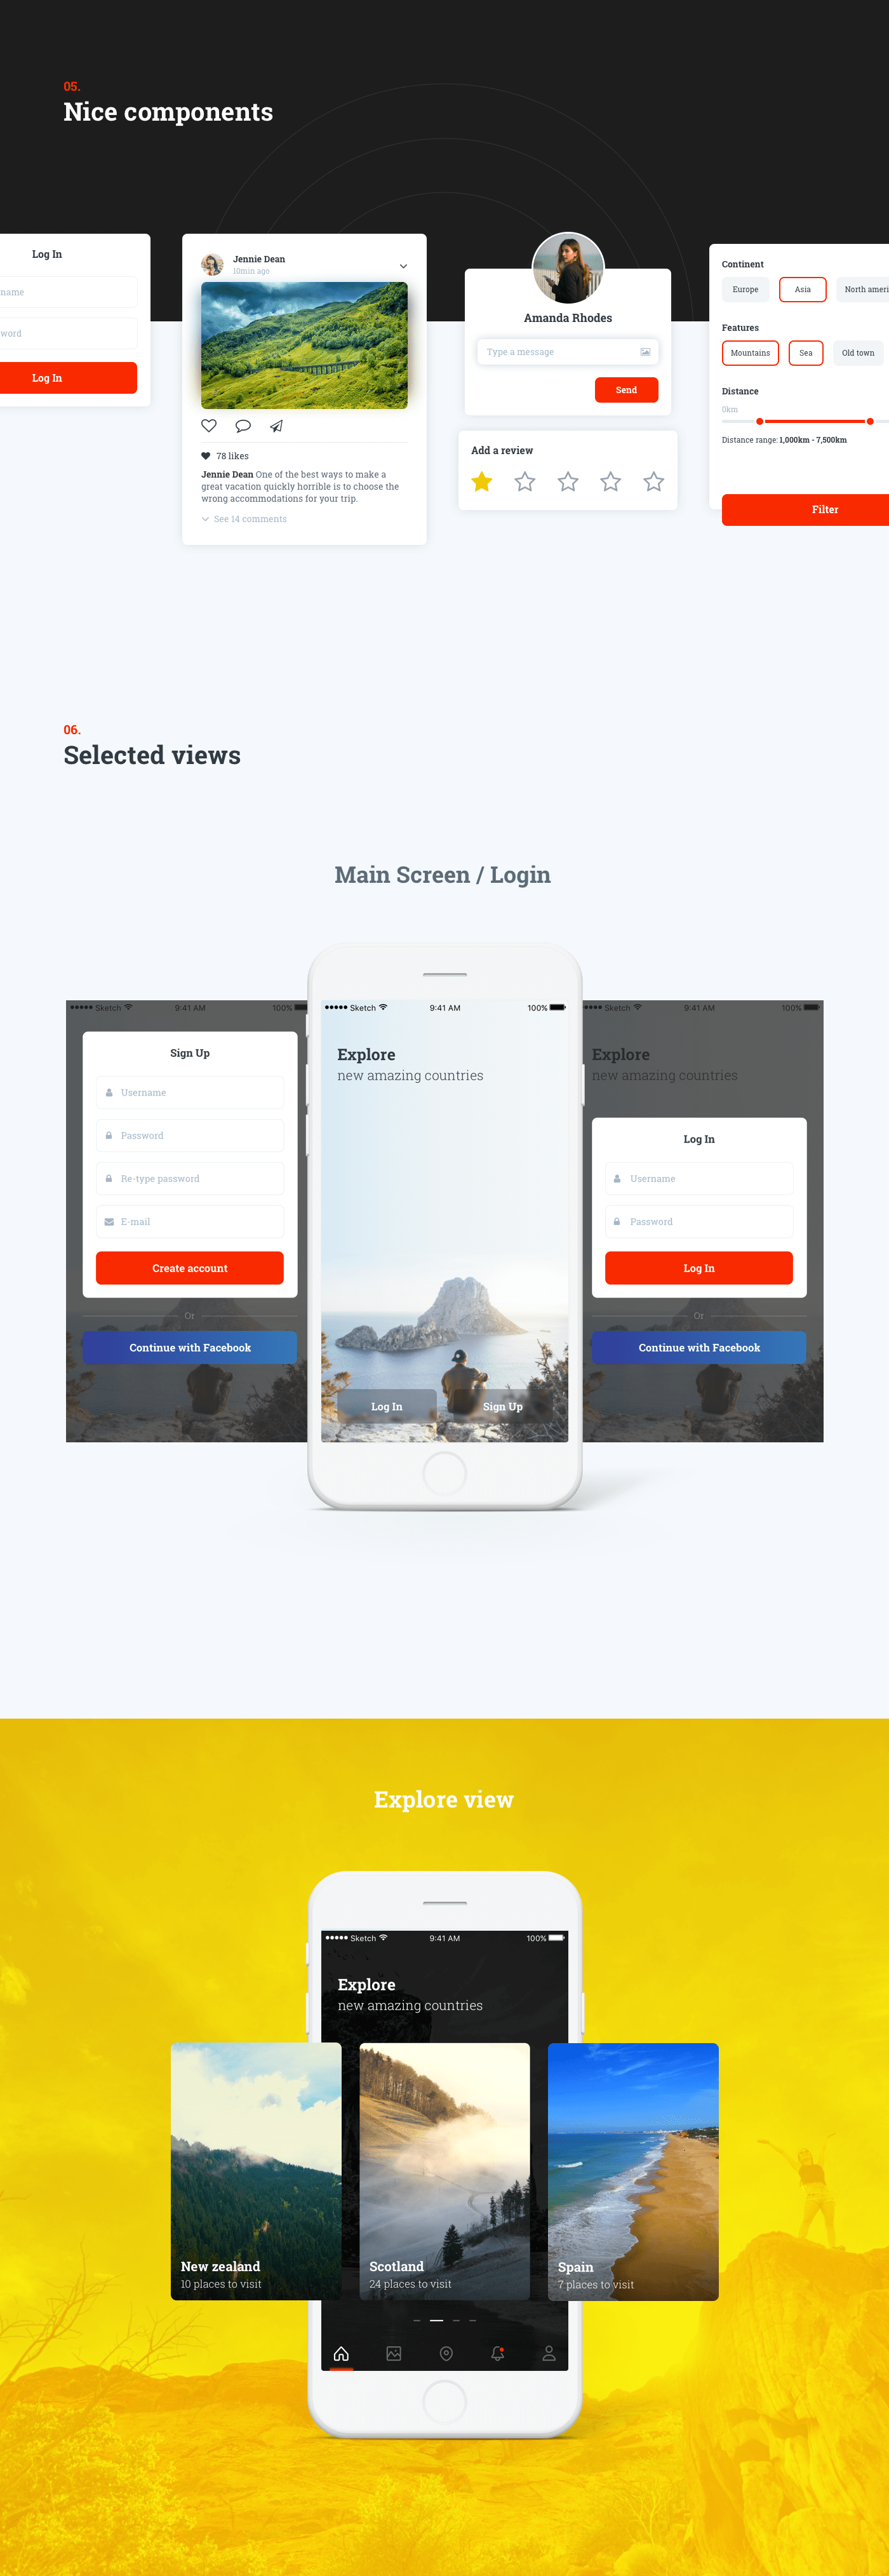 Free Travel App Ui Kit - There are 15+ carefully designed mobile screens by 7ninjas